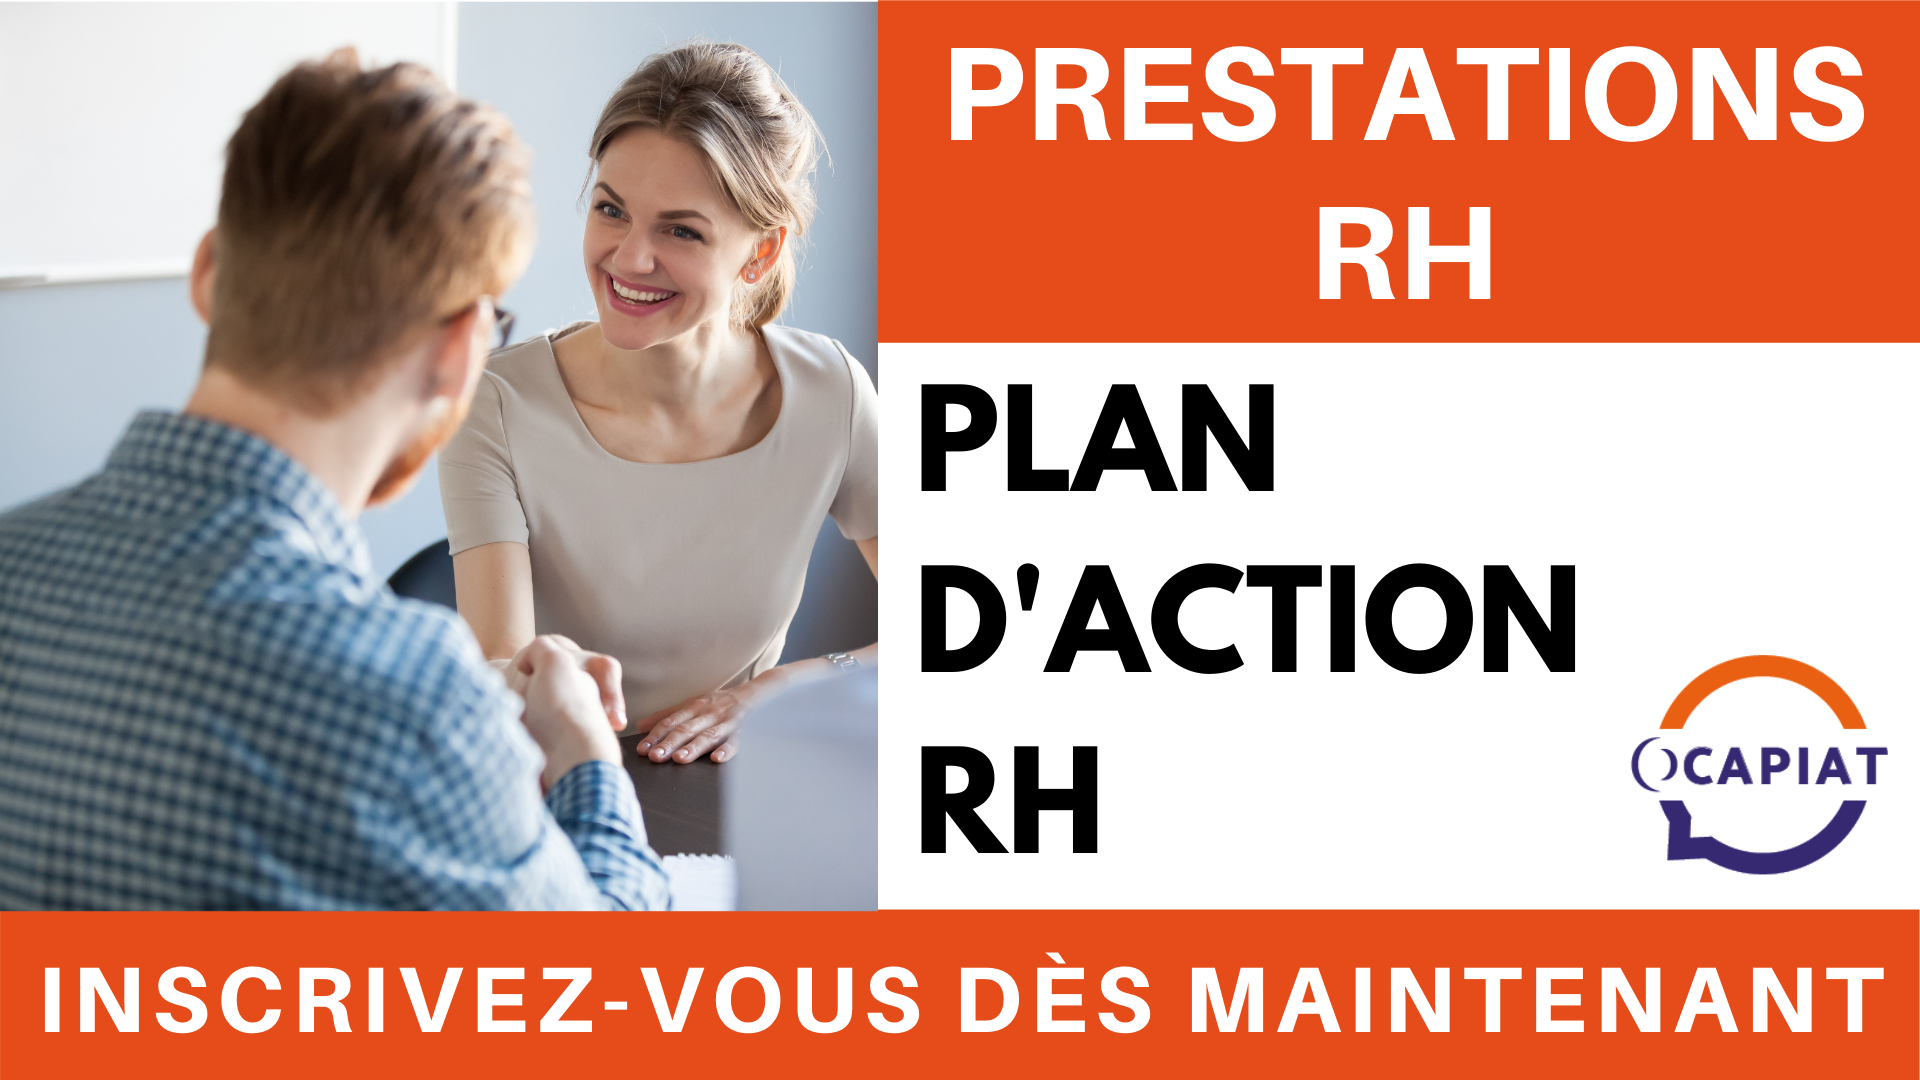 Prestations RH - Diagnostic RH OCAPIAT